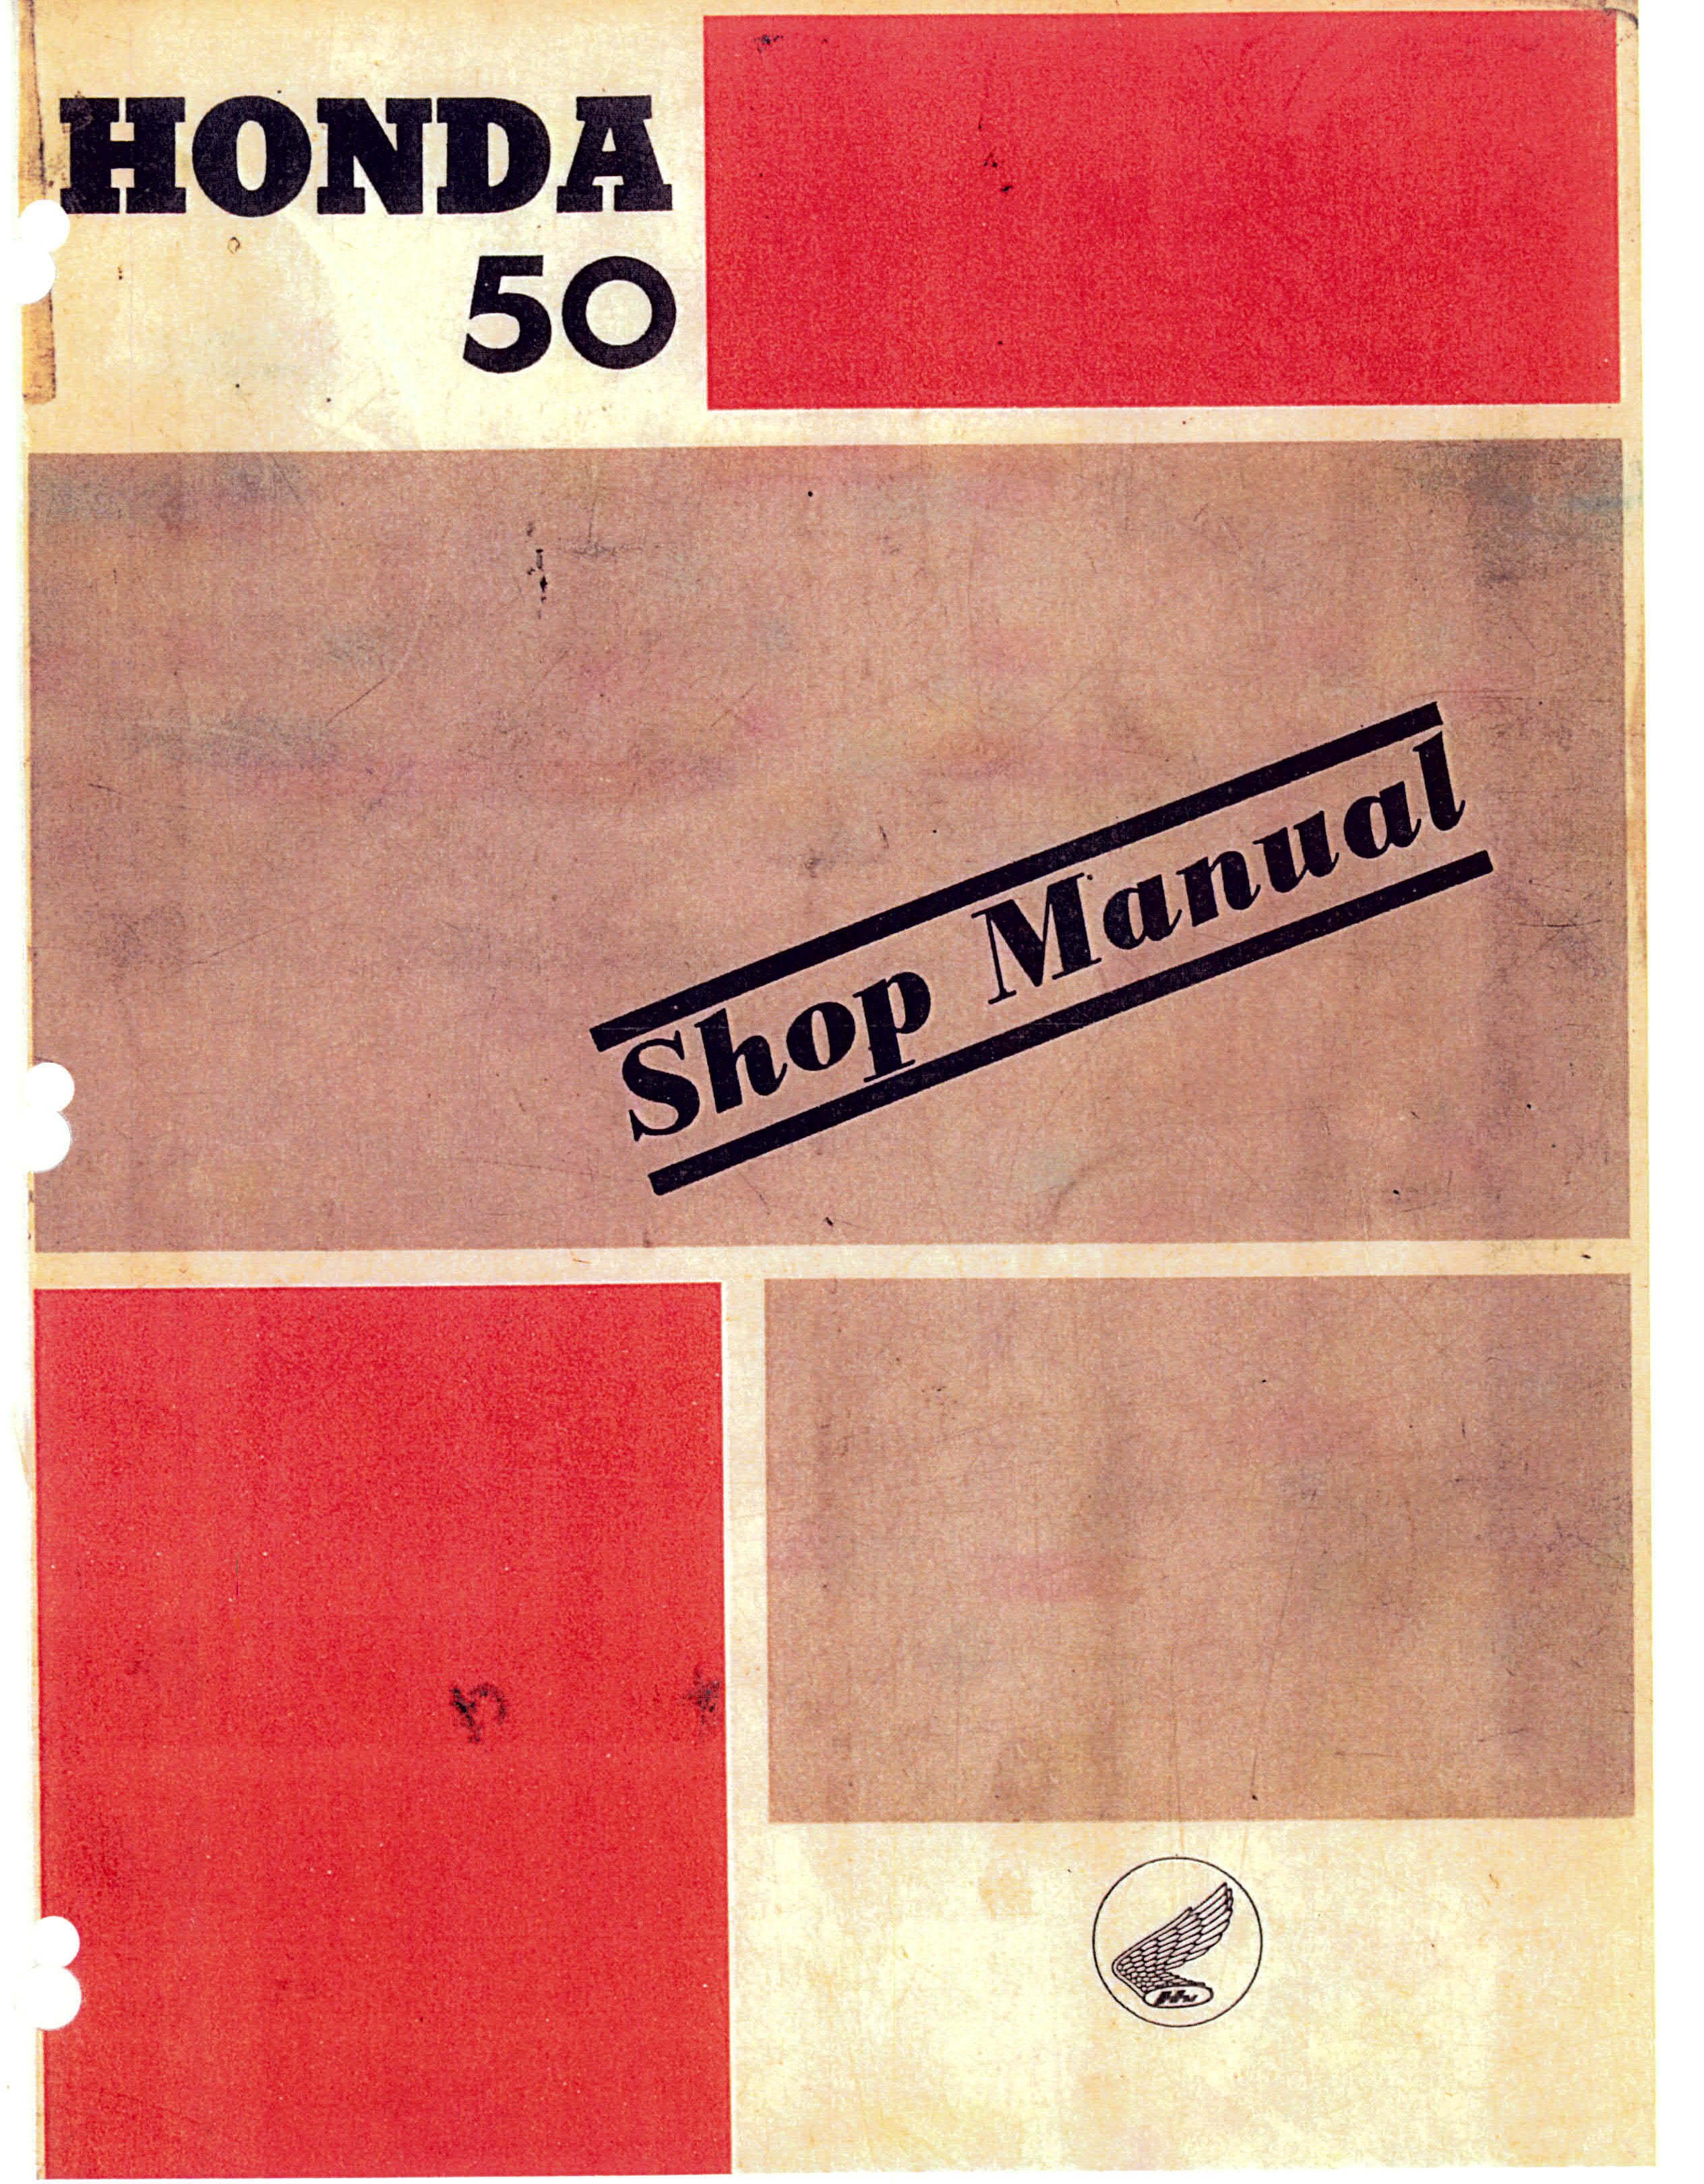 Workshop manual for Honda C110 (1961)